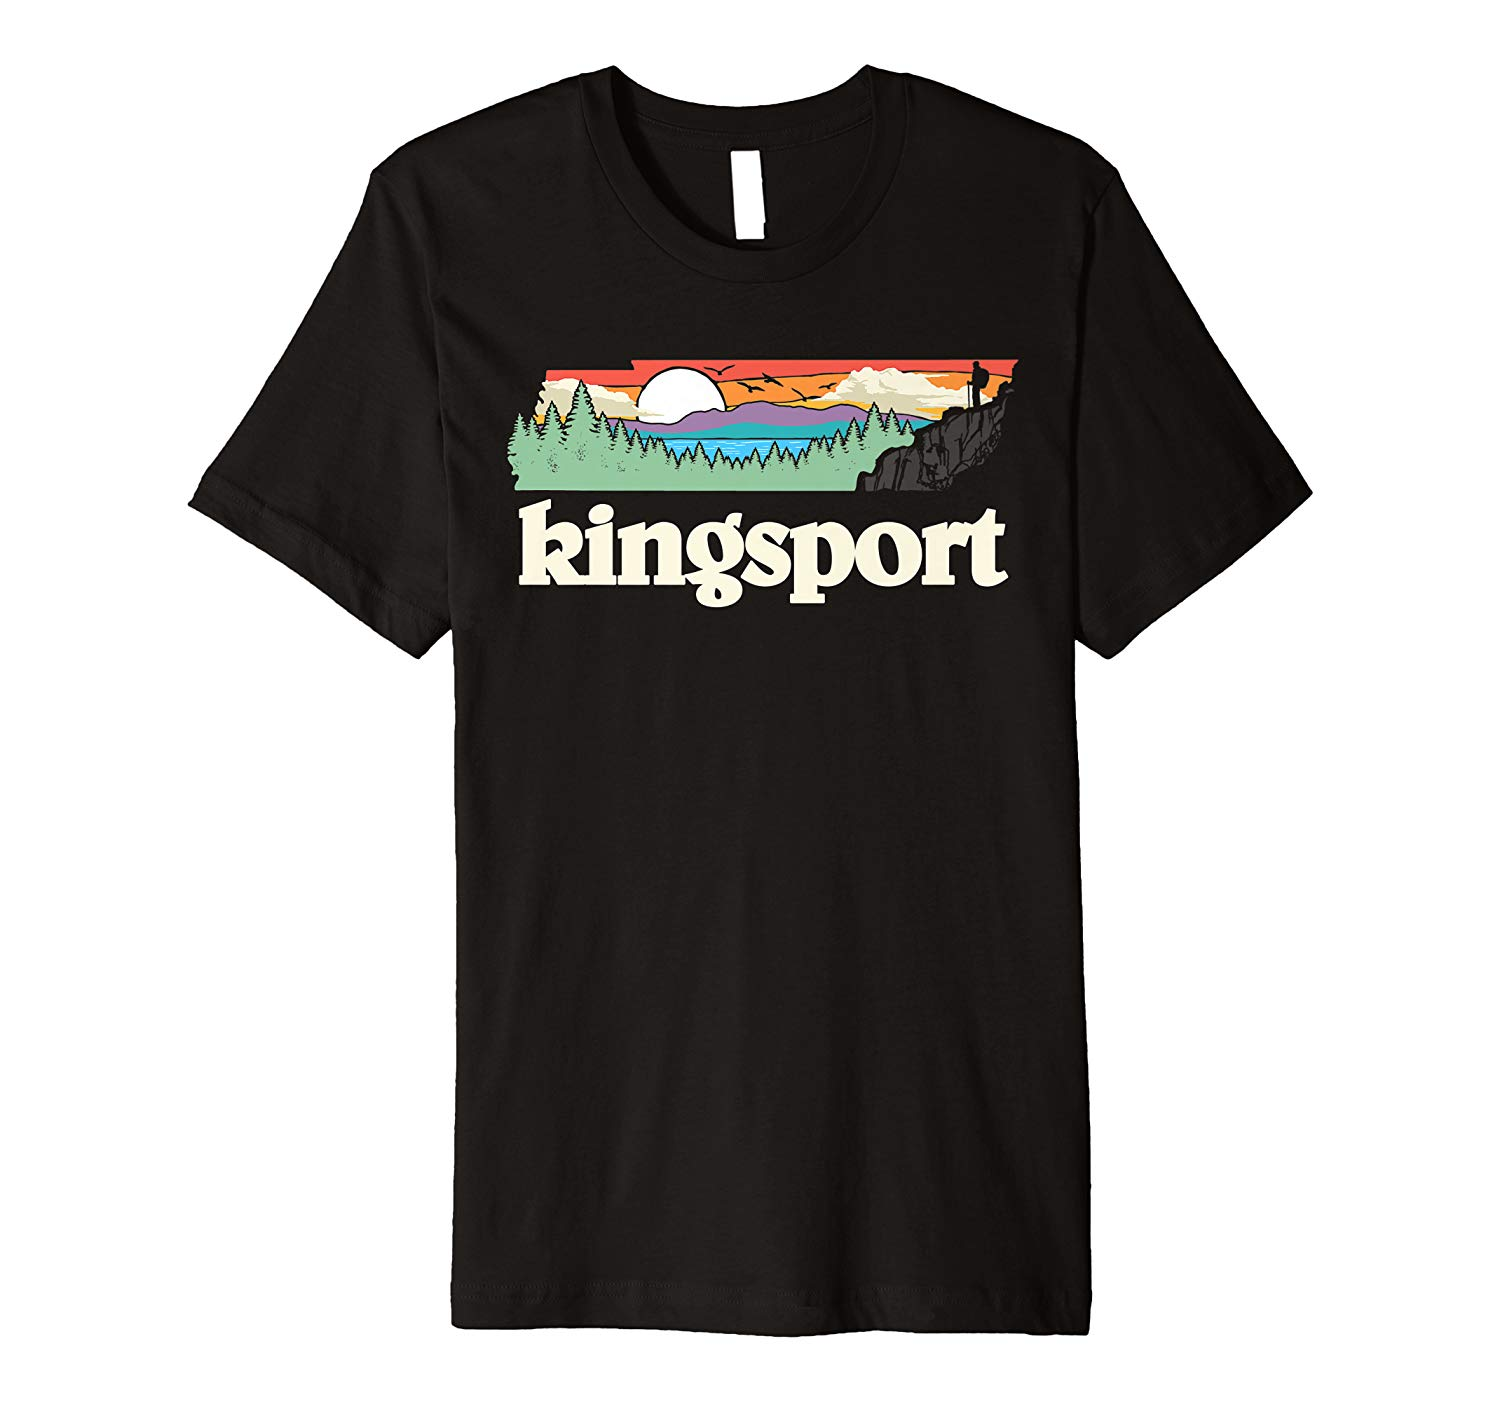 Kingsport Tennessee Outdoors Retro Nature Graphic Shirts